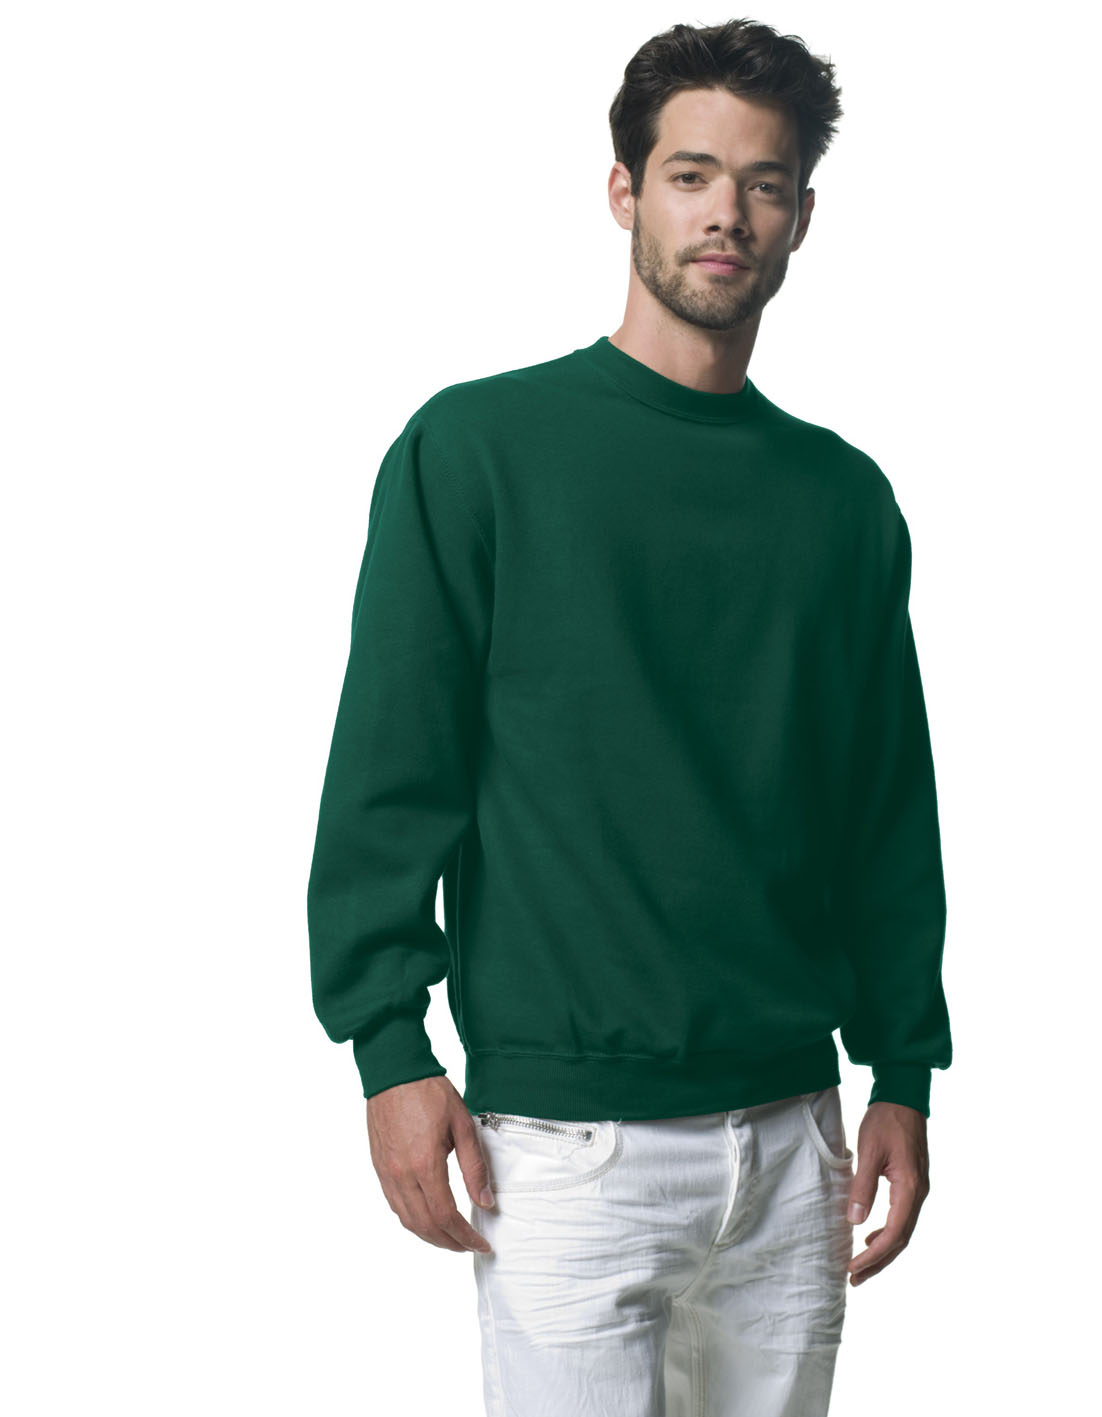 Russell Set-in Sleeve Sweatshirt RU262M foto 1